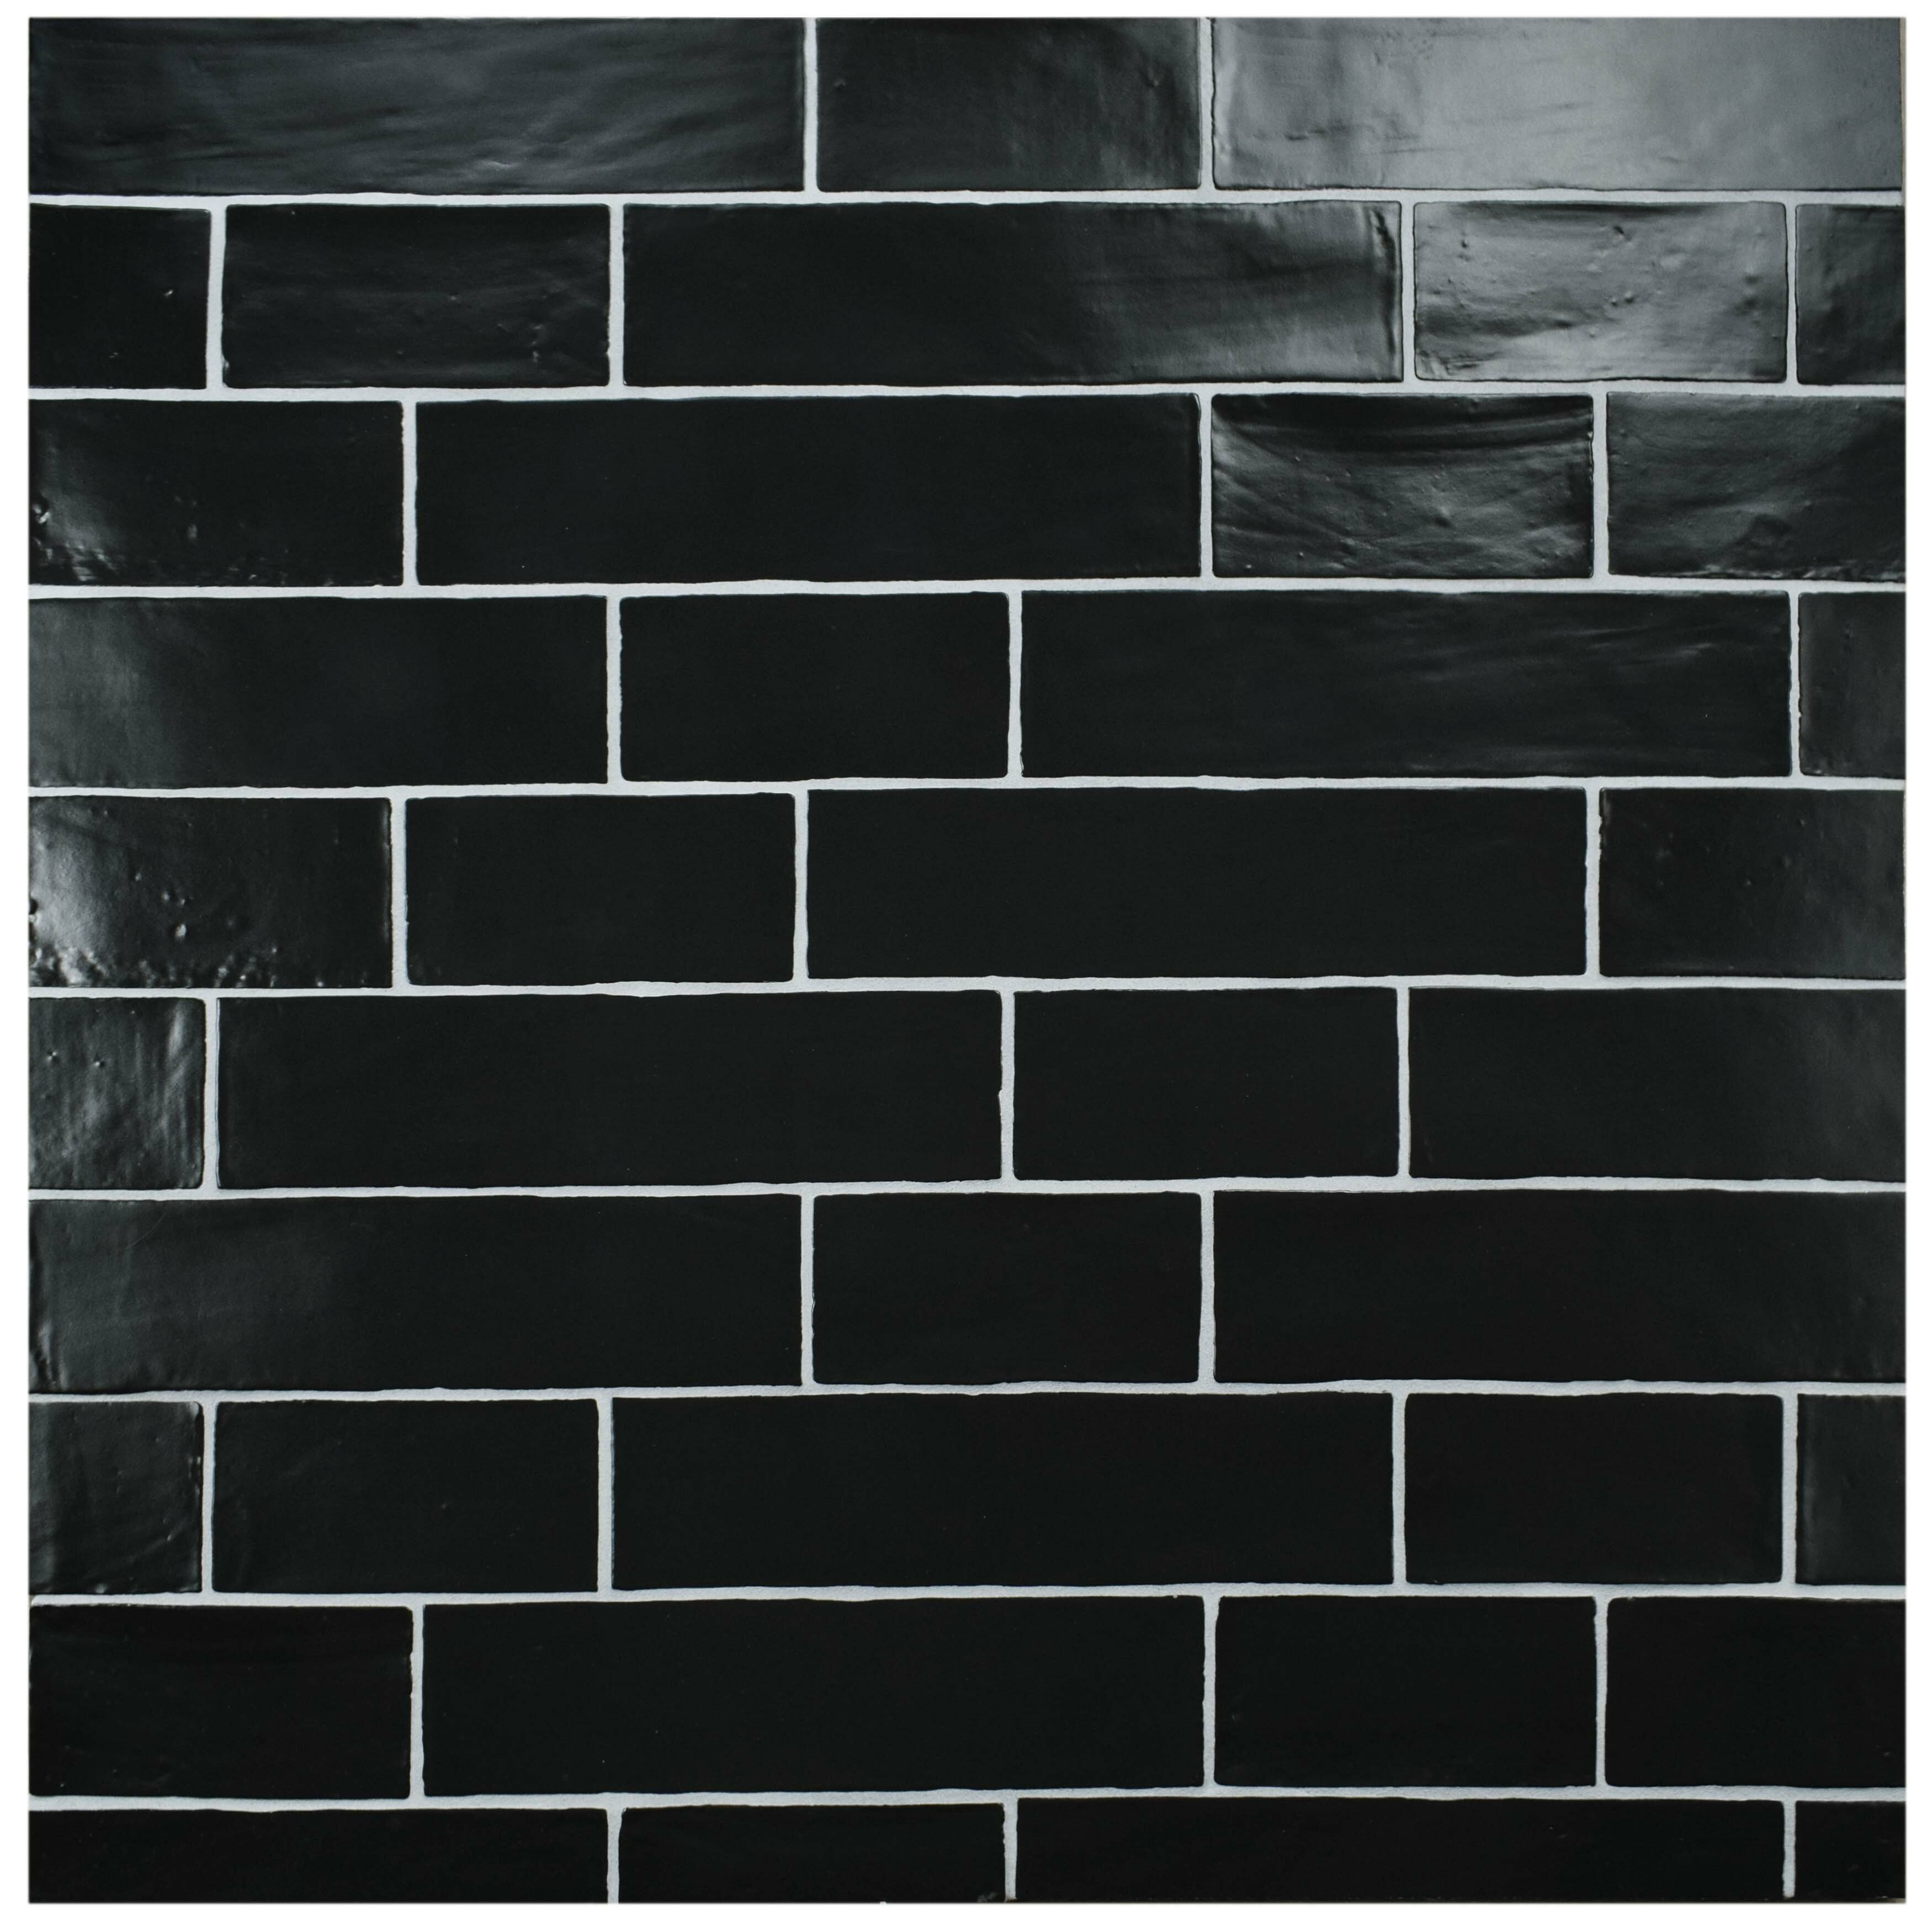 matte black subway tile images tile flooring design ideas black subway tile home decoration tivoli 3